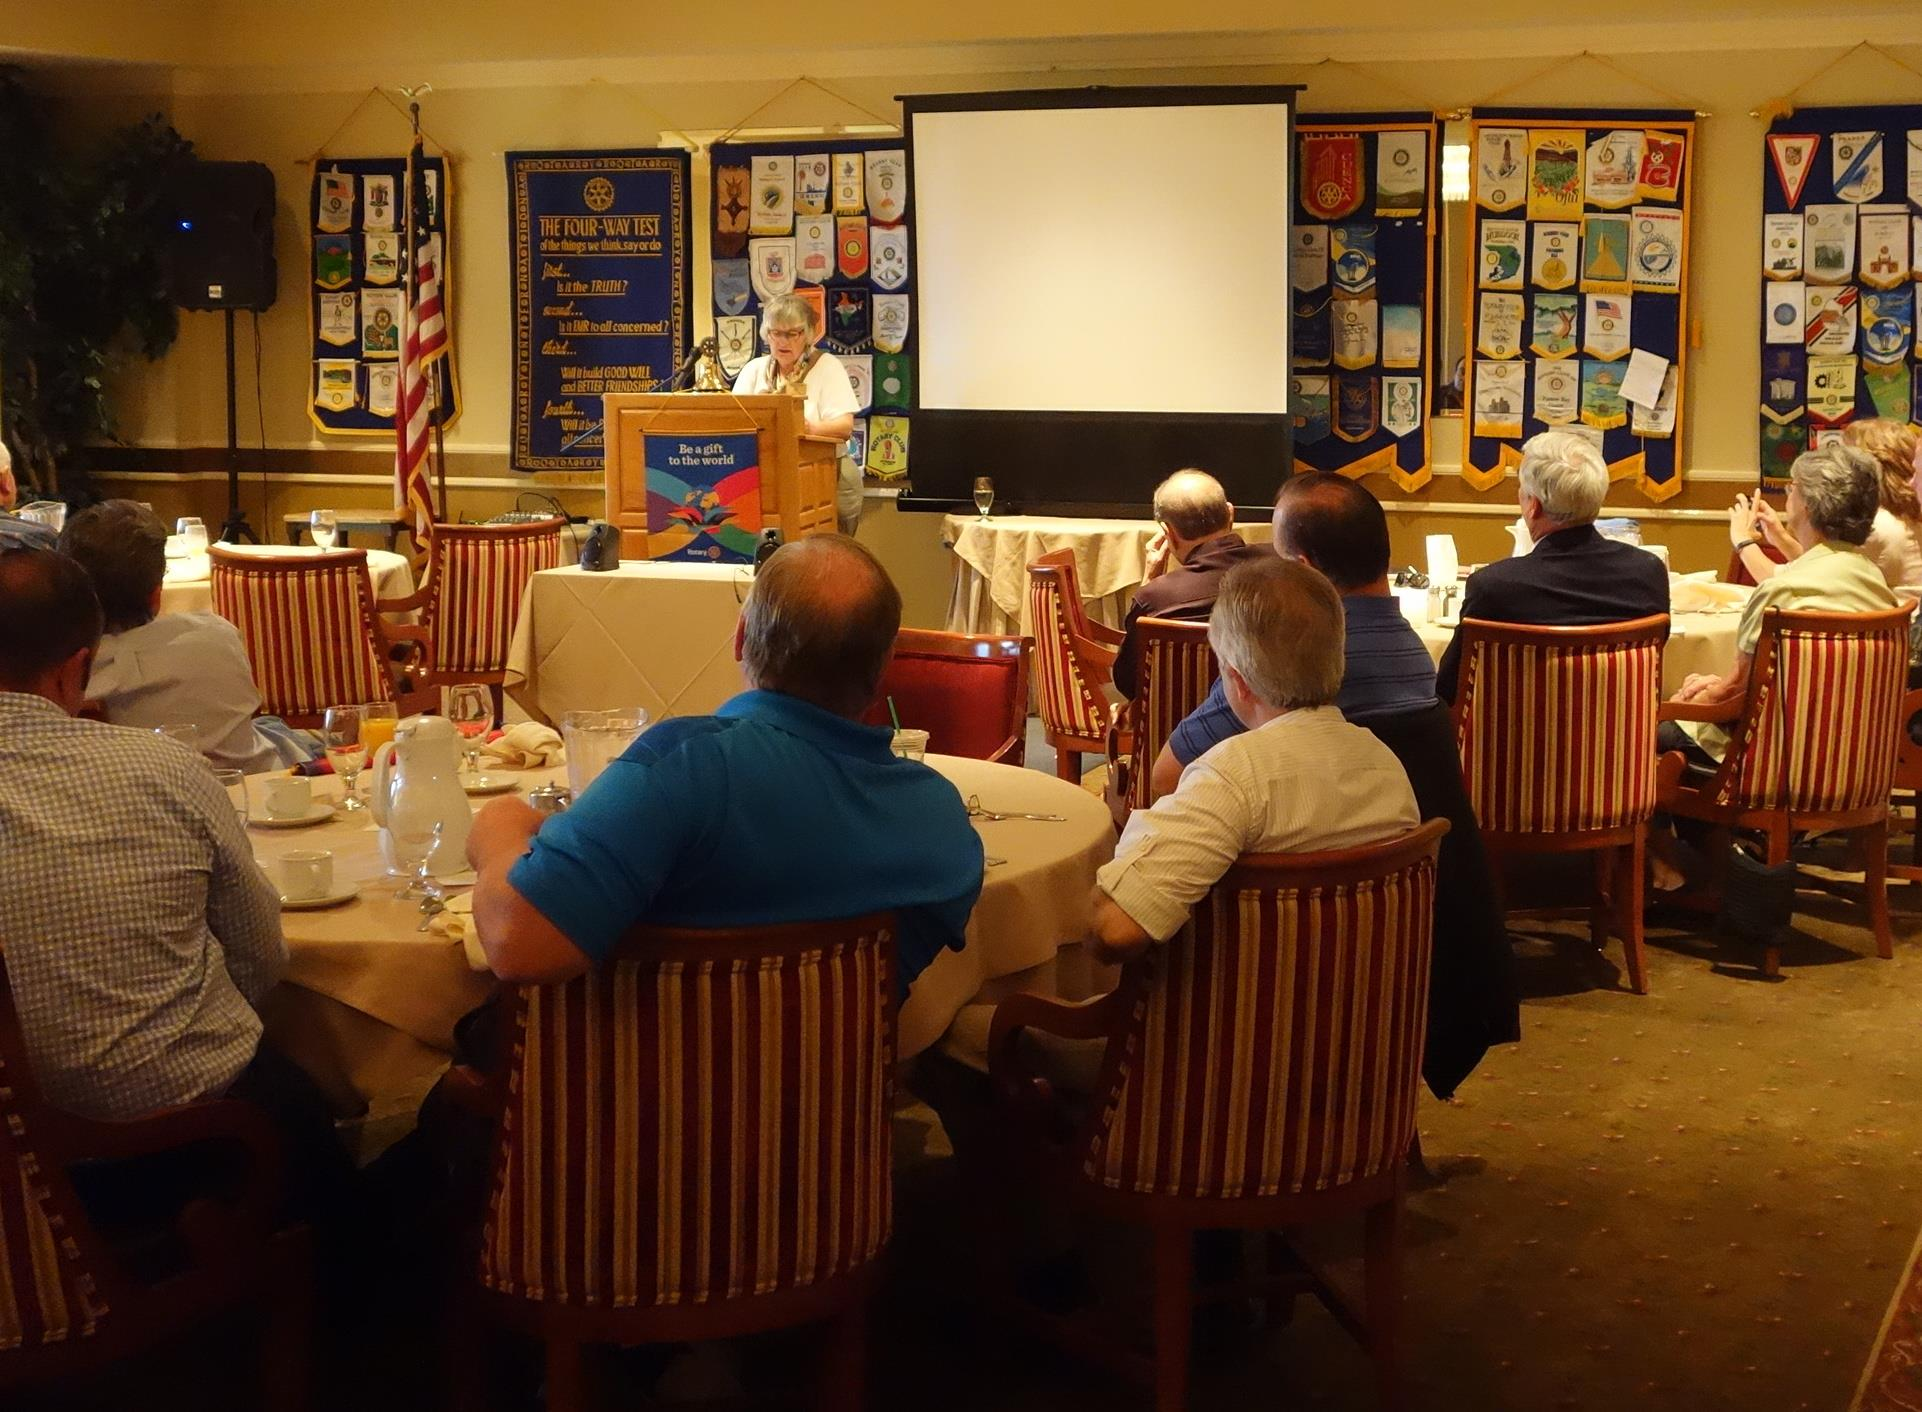 Stories | Rotary Club of Westlake Village Sunrise